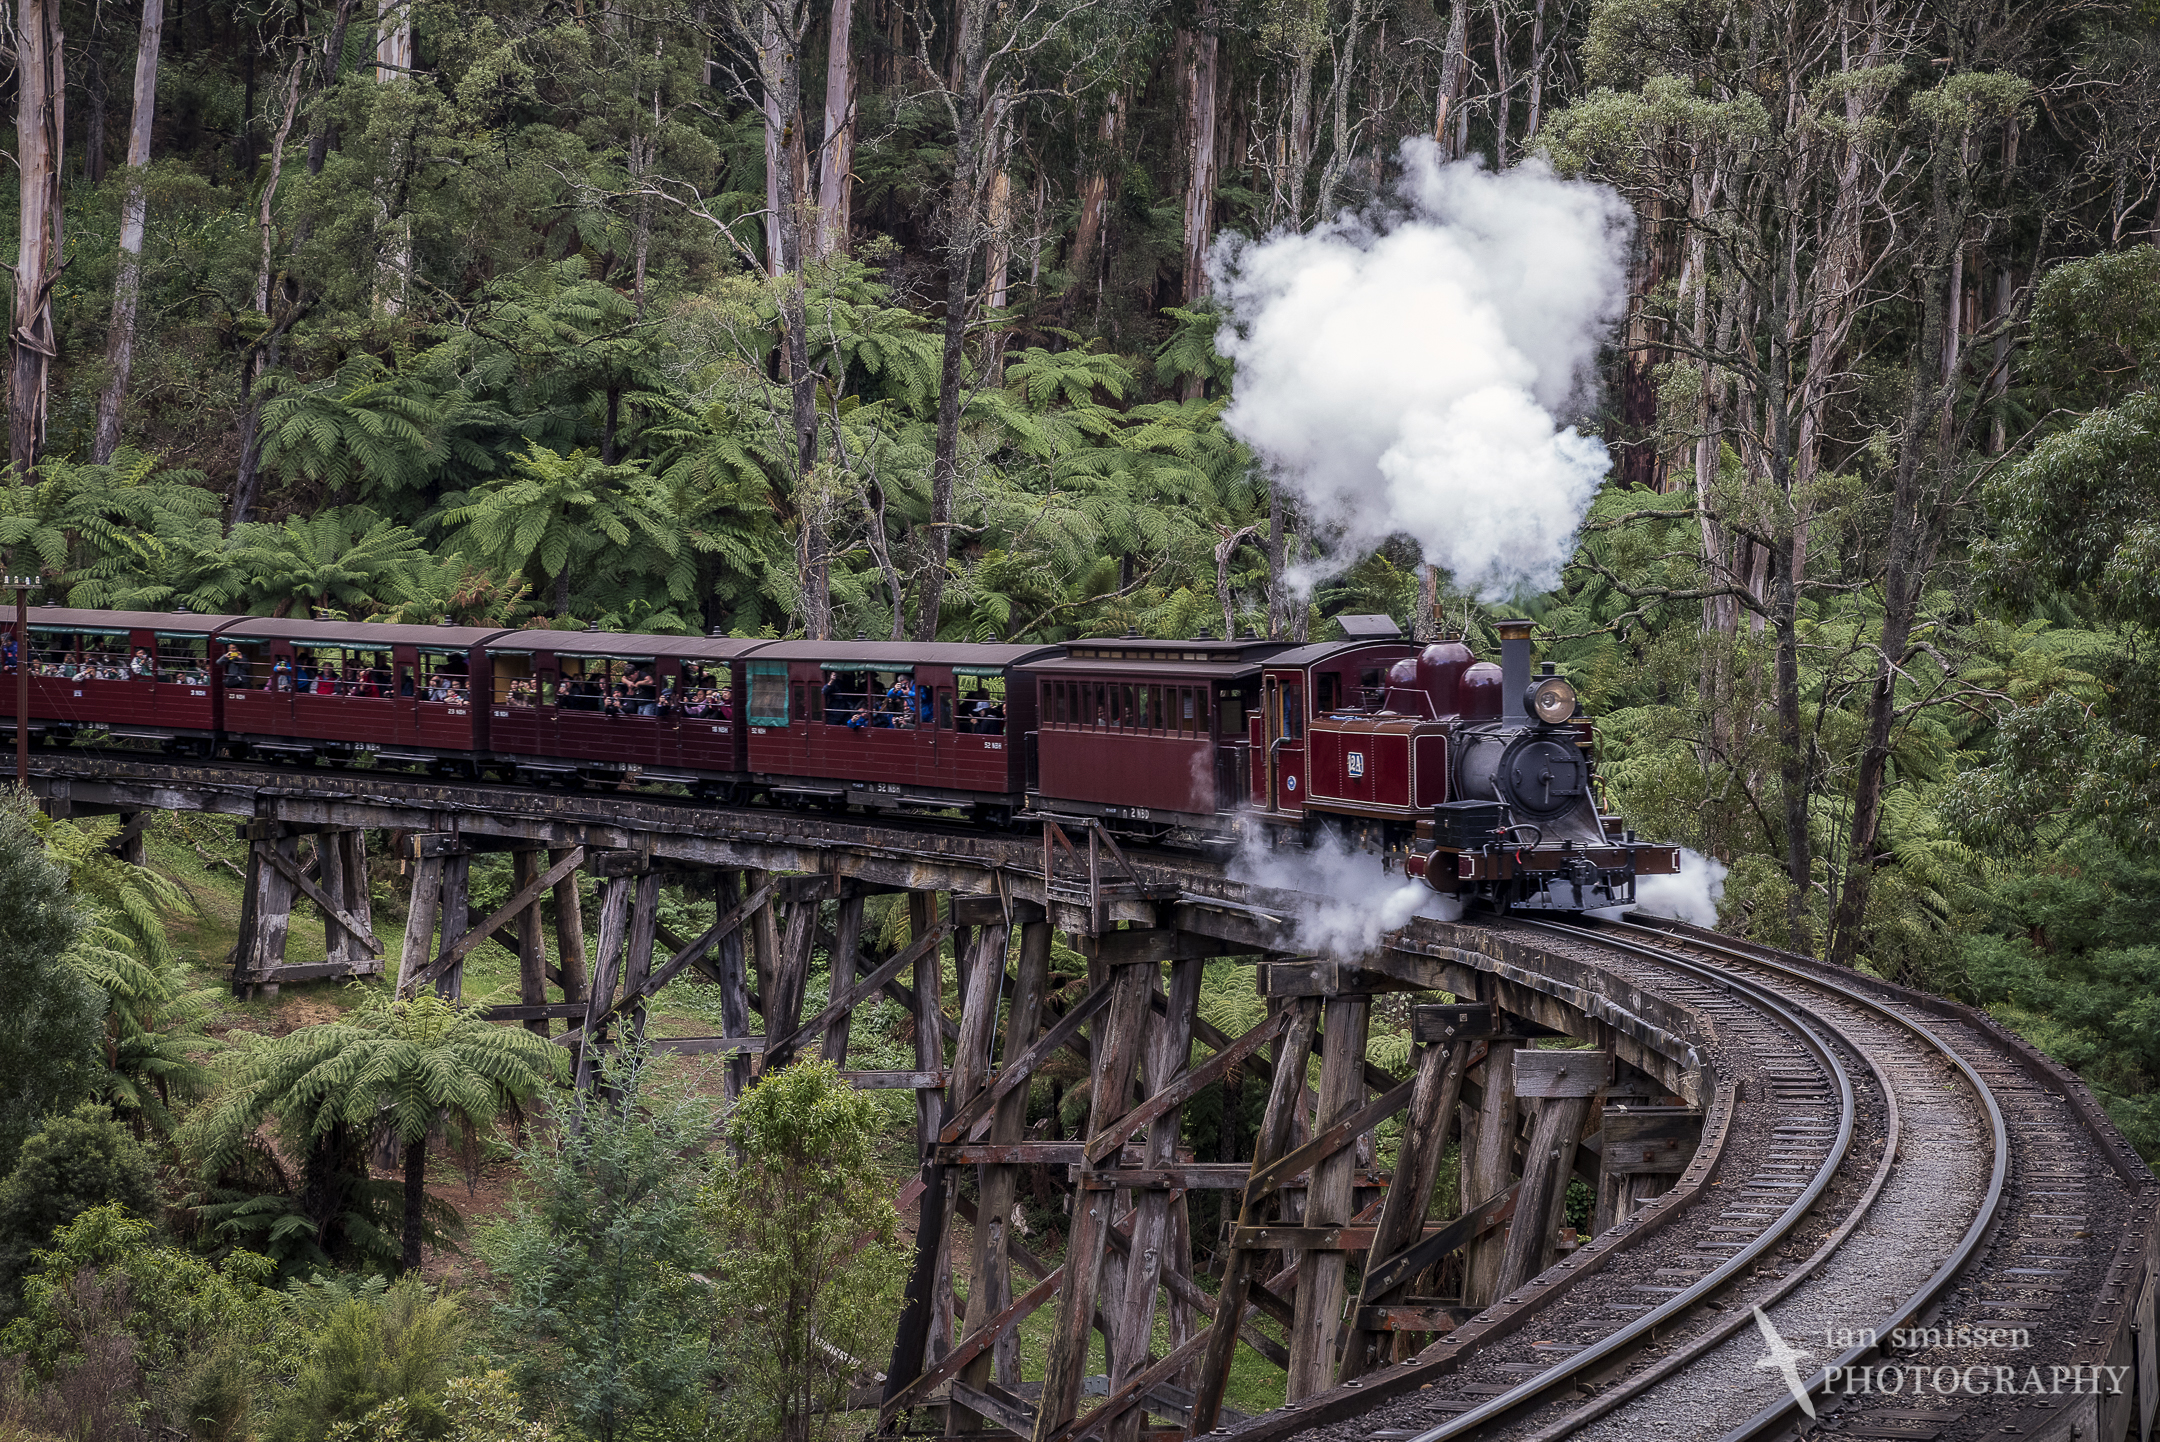 Puffing Billy on trestle bridge, Belgrave, Victoria 65mm, ISO 1000, 1/60 second @ f/8, Circular Polarising Filter